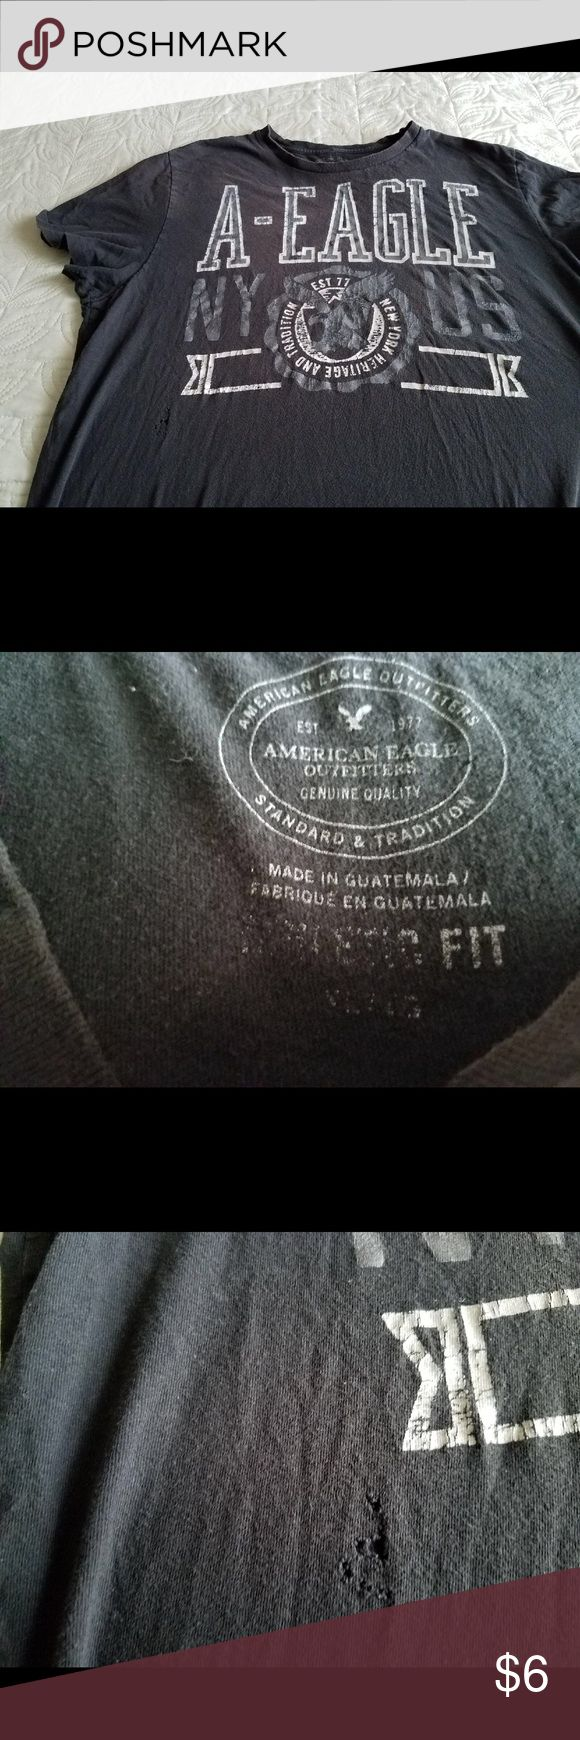 American eagle tshirt American eagle t shirt size xlarge does have a few small holes in the front I took a picture of them other than that great condition American Eagle Outfitters Shirts Tees - Short Sleeve